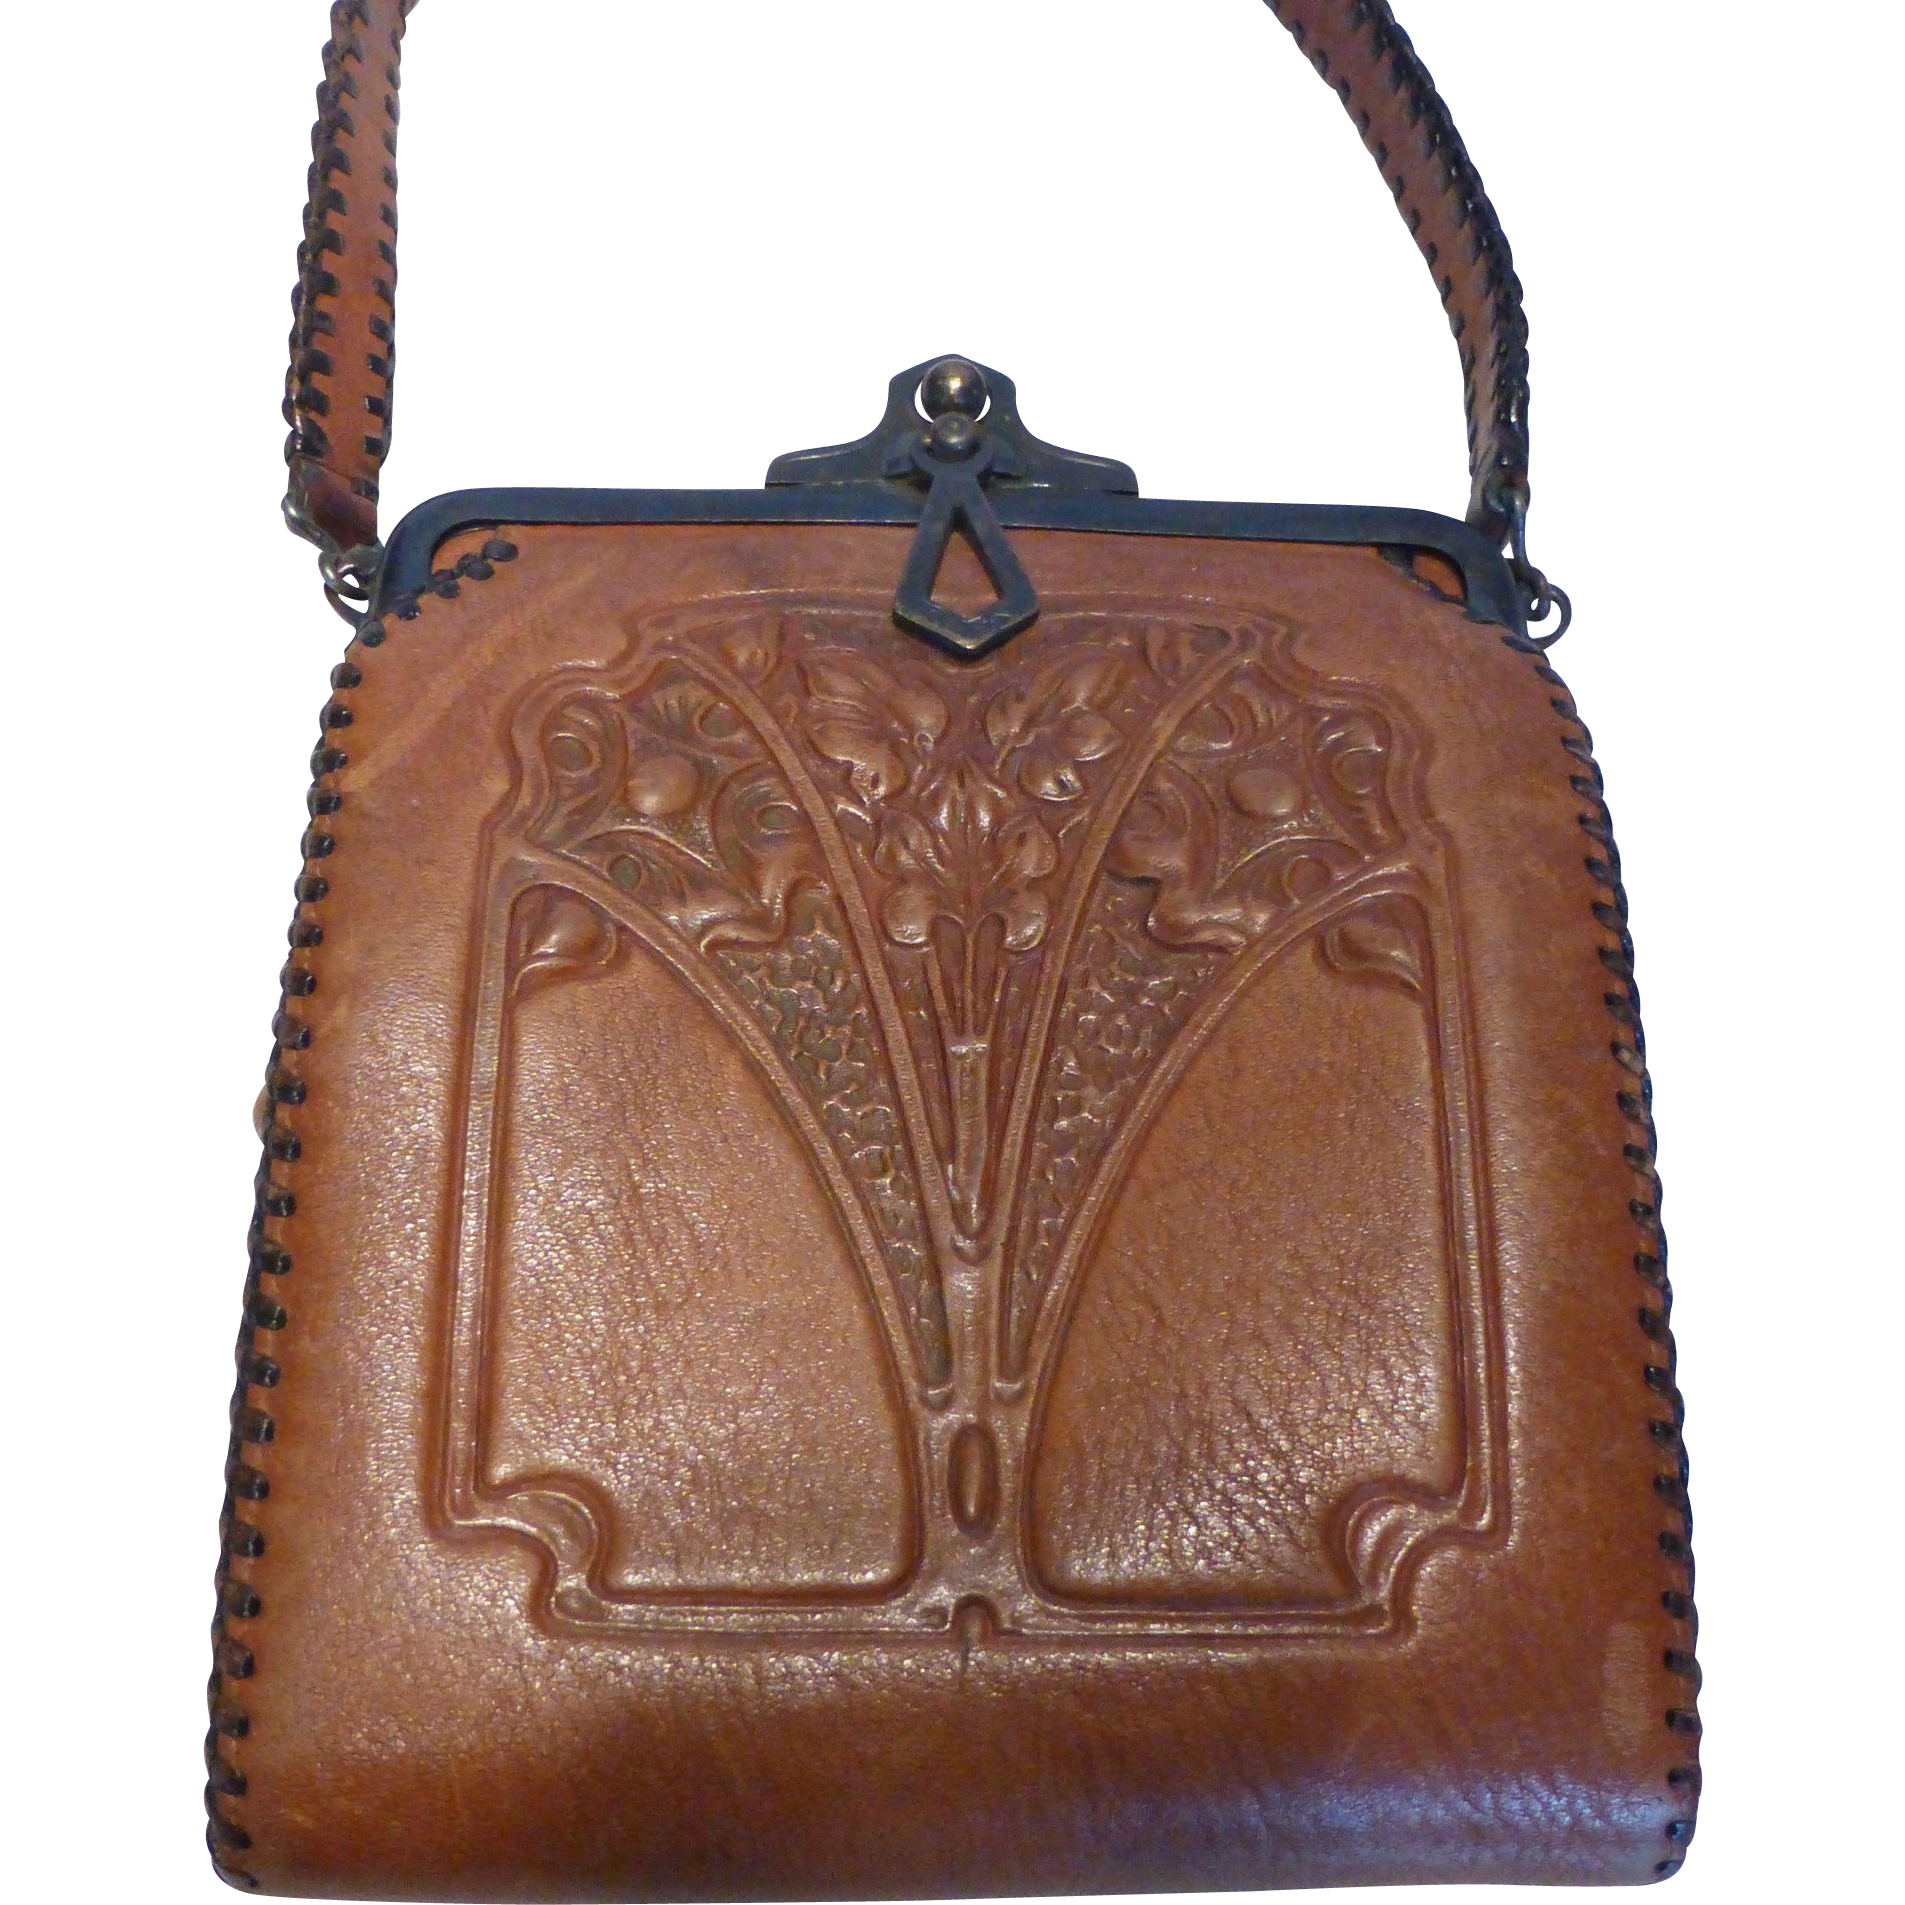 1920 S Arts Crafts Embossed Leather Purse Handbag By Nocona Bags Historique Ruby Lane